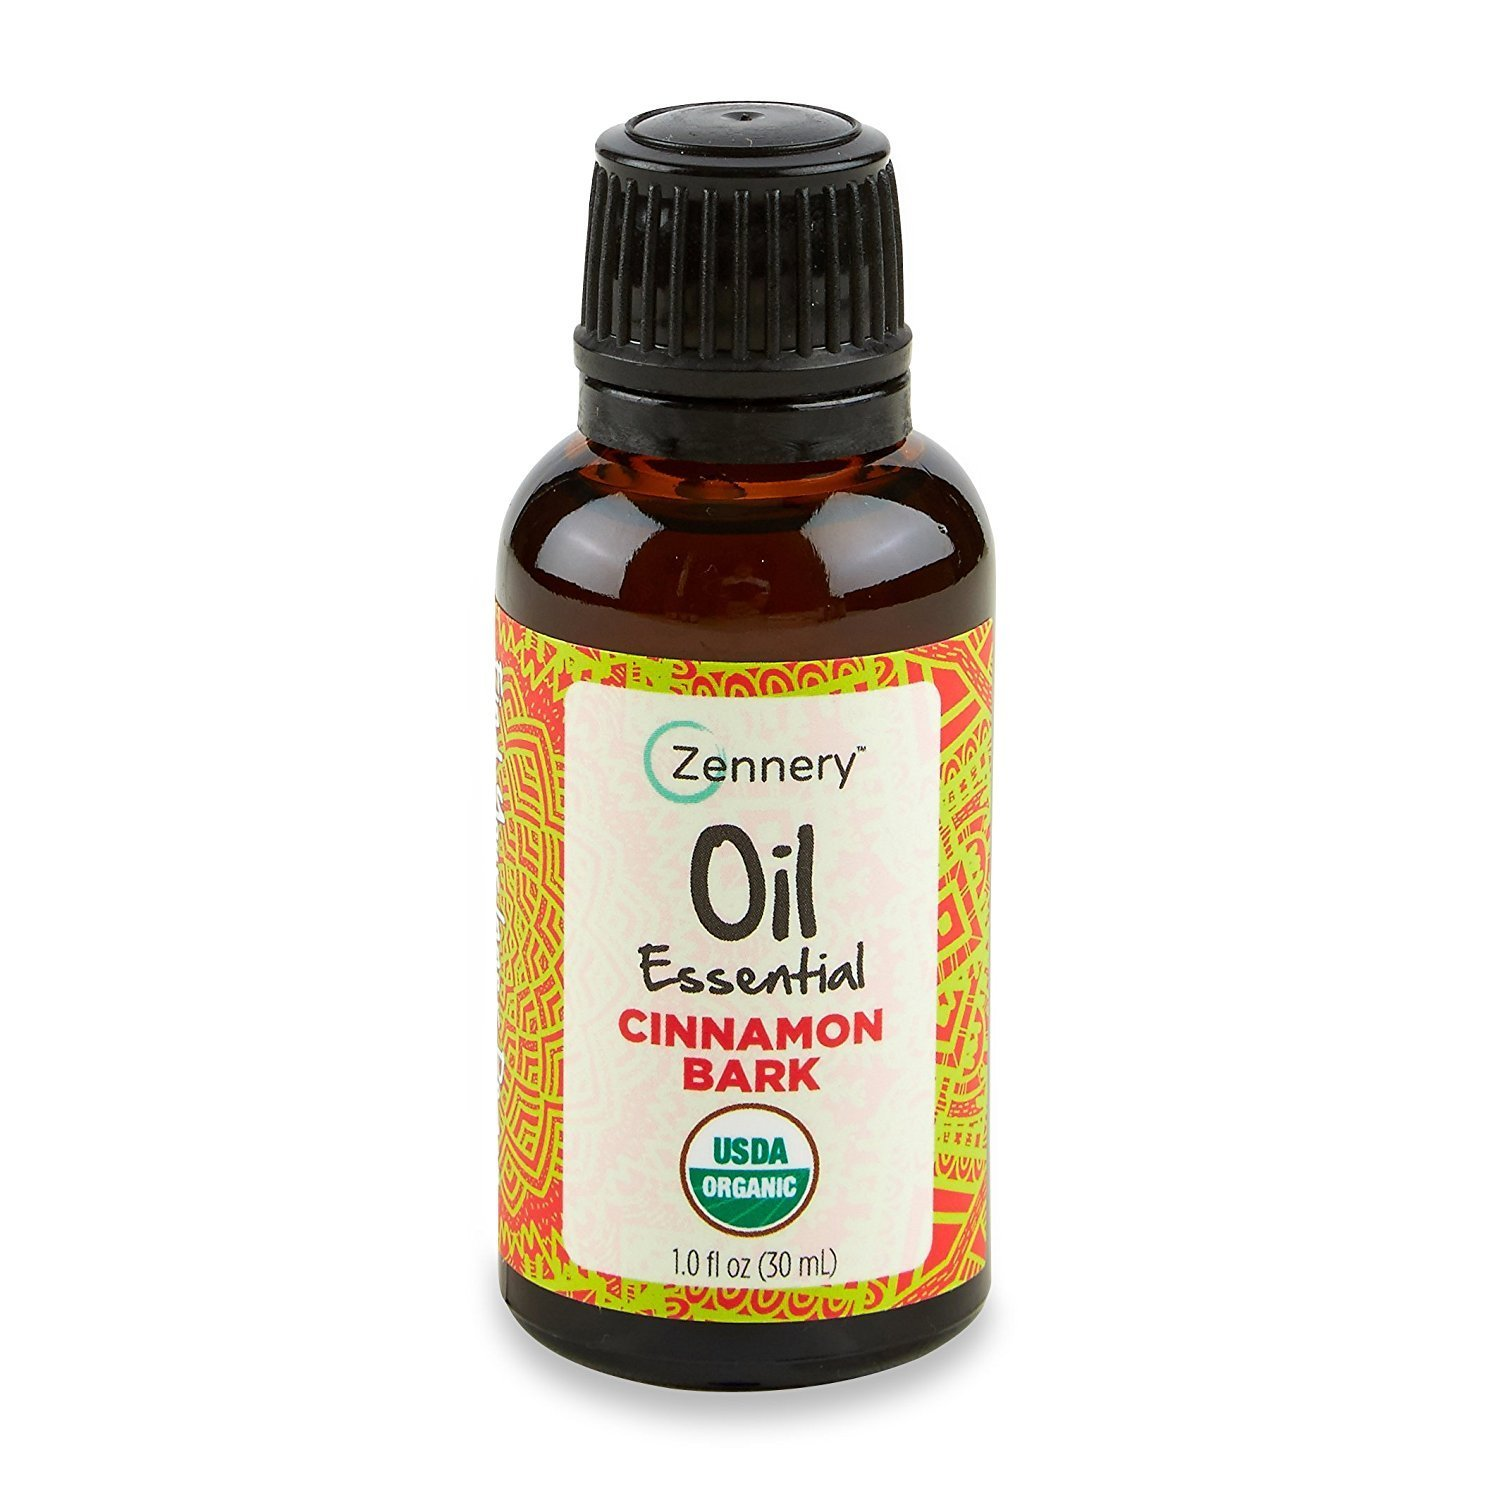 Zennery 100% Pure Cinnamon Bark Essential Oil (USDA CERTIFIED ORGANIC) 1oz (30ml) Cinnamomum verum - Great for diffusers, Topicals or with a Carrier Oil Therapeutic Grade *NOT TESTED ON ANIMALS*